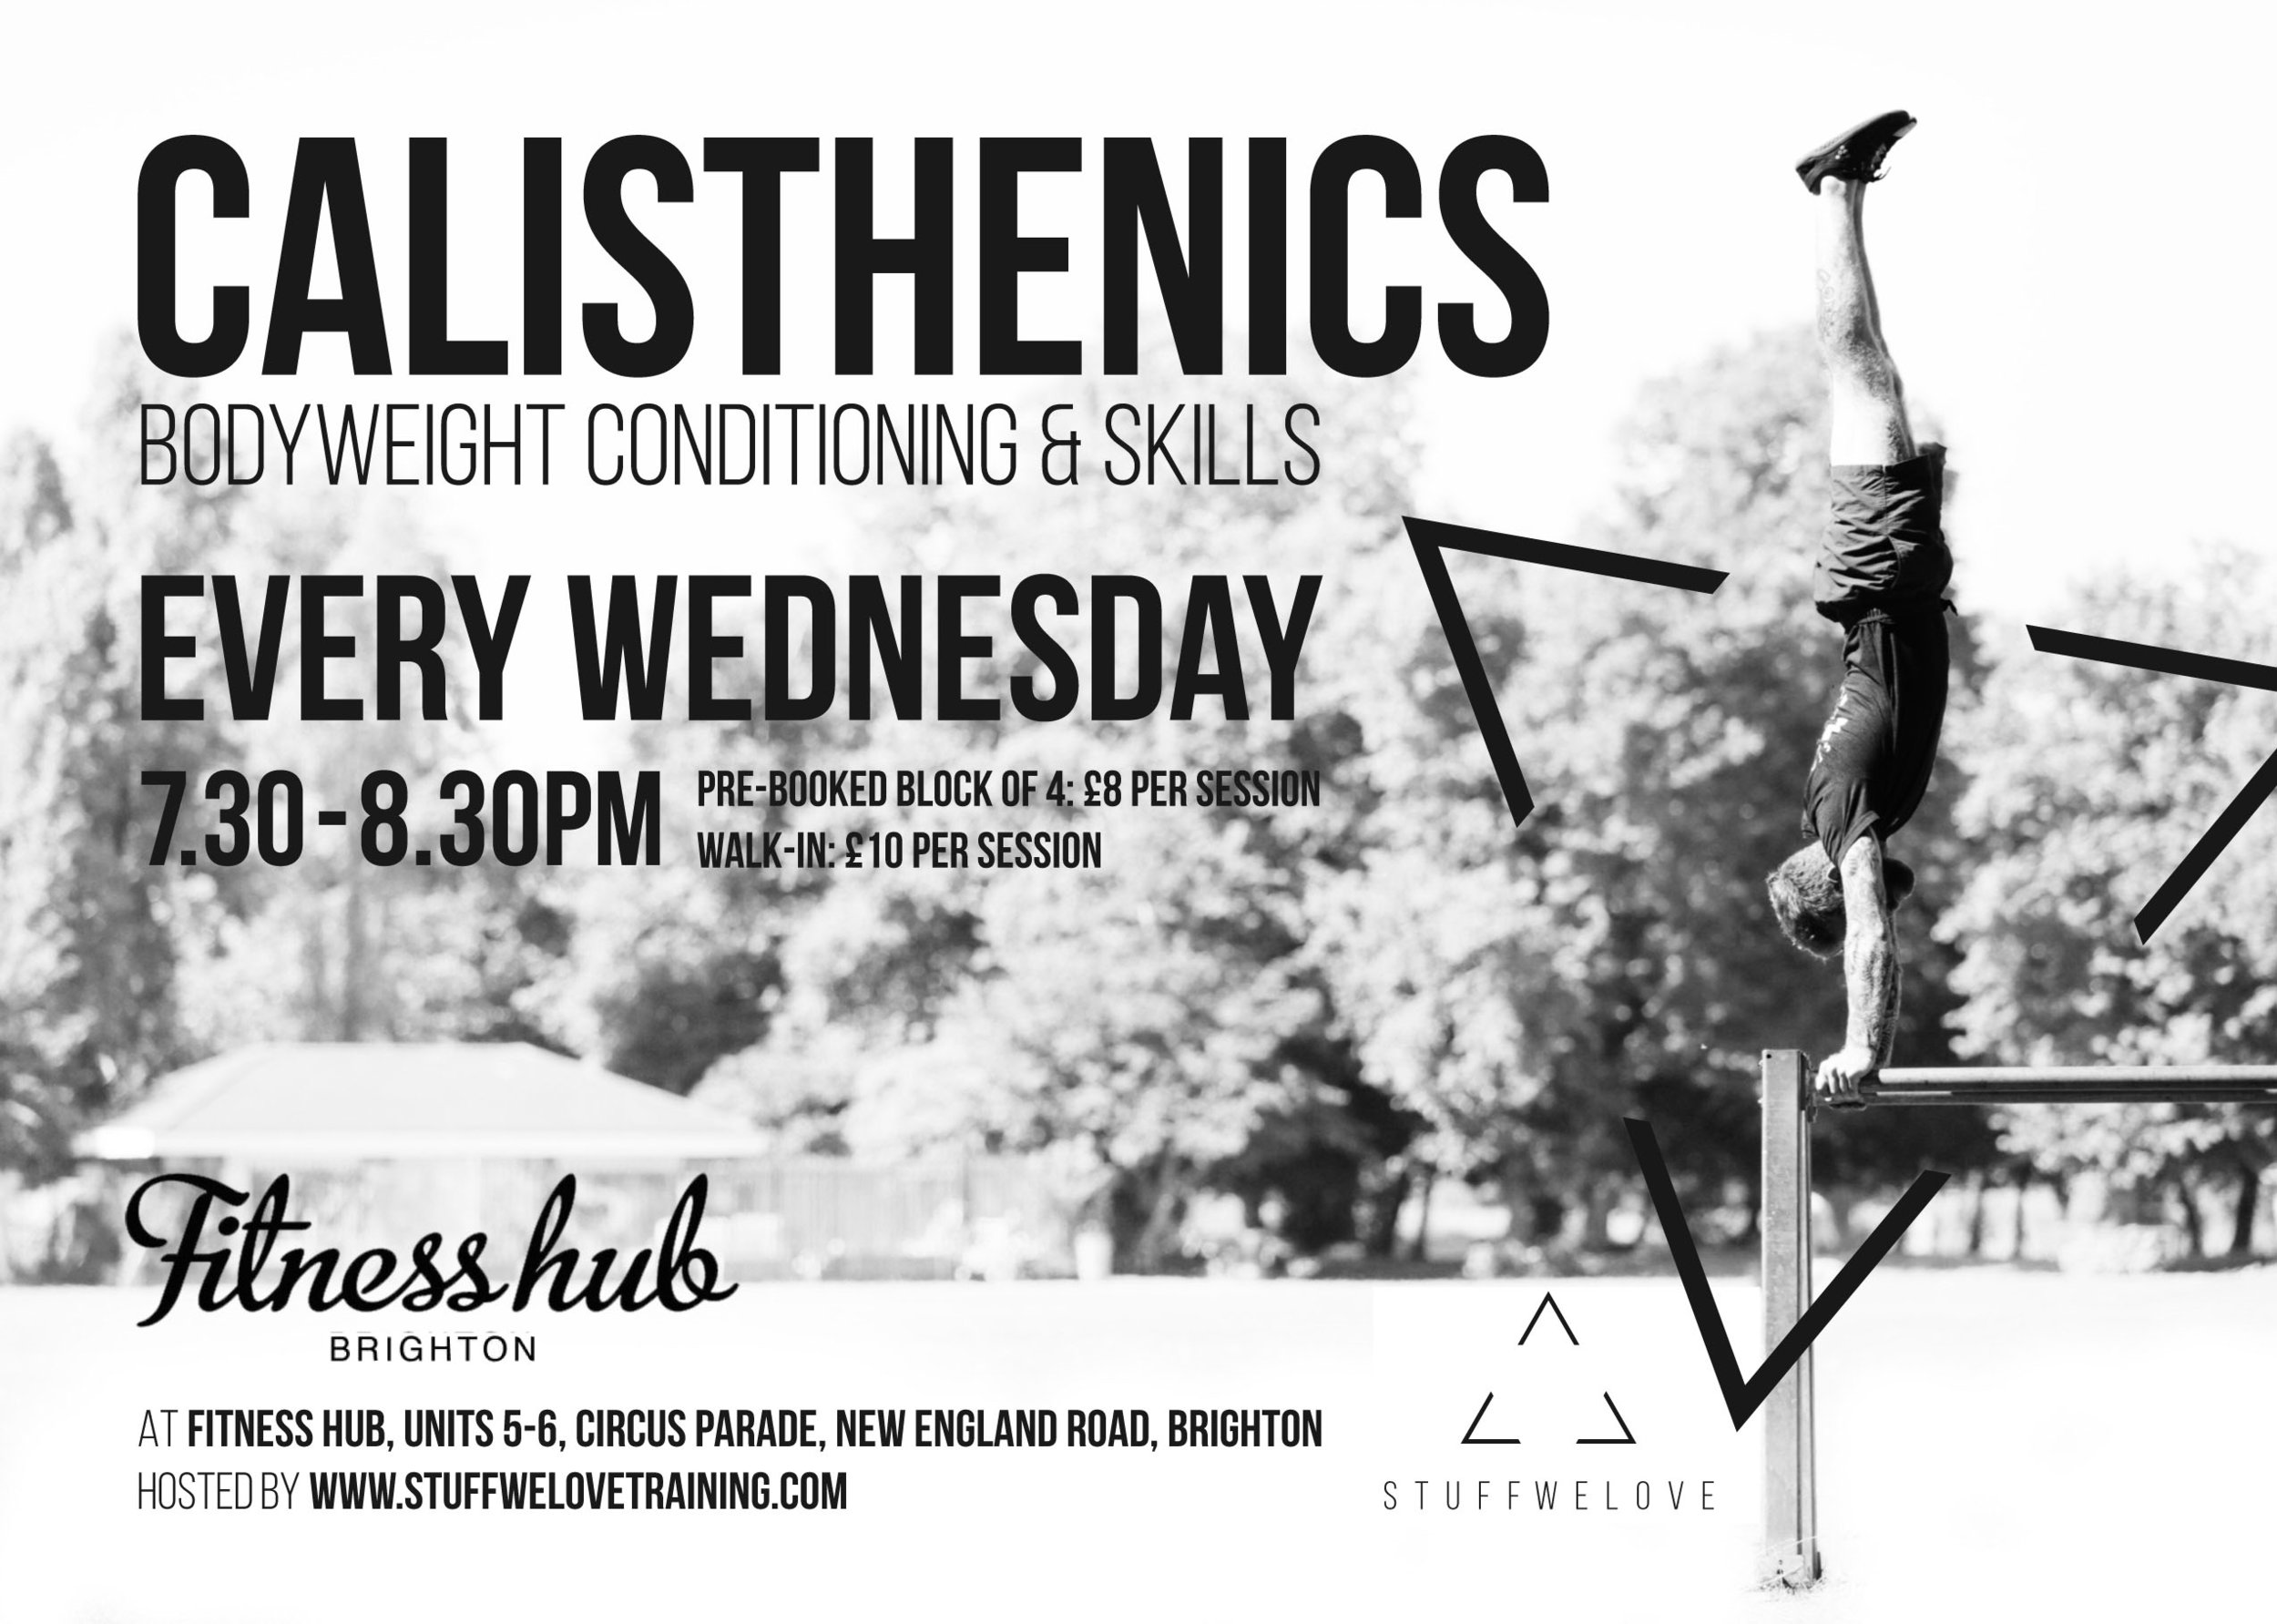 MY WEEKLY CALISTHENICS CLASS IS RUNNING AT FITNESS HUB - COME TO THE FREE TASTER SESSION &BOOK YOUR PLACE BY SENDING ME AN EMAIL!